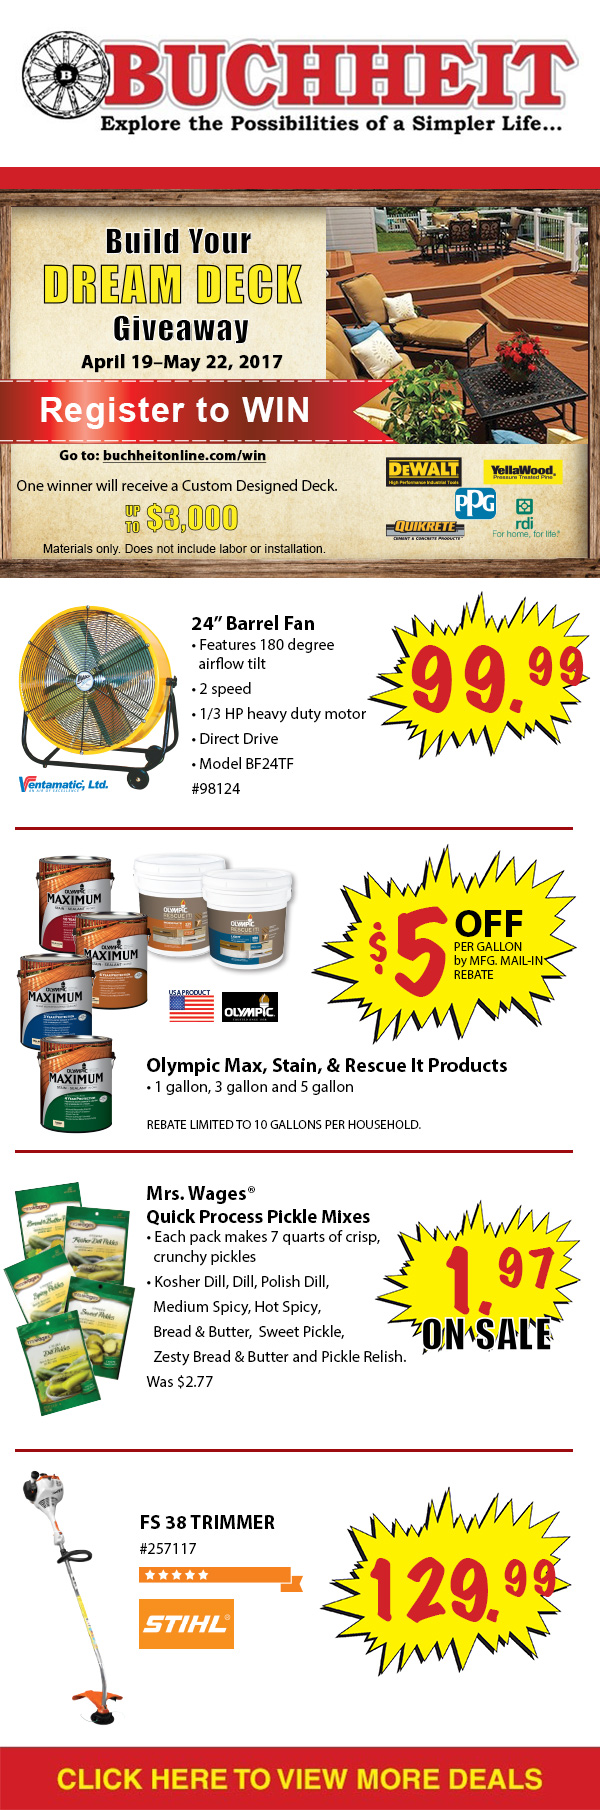 Retail Promo Email - I designed this email for Buchheit to promote their Dream Deck Giveaway, and weekly sales. Driving subscribers to their website and stores. I used their logo and branding to create a clear and product focused promotional email.